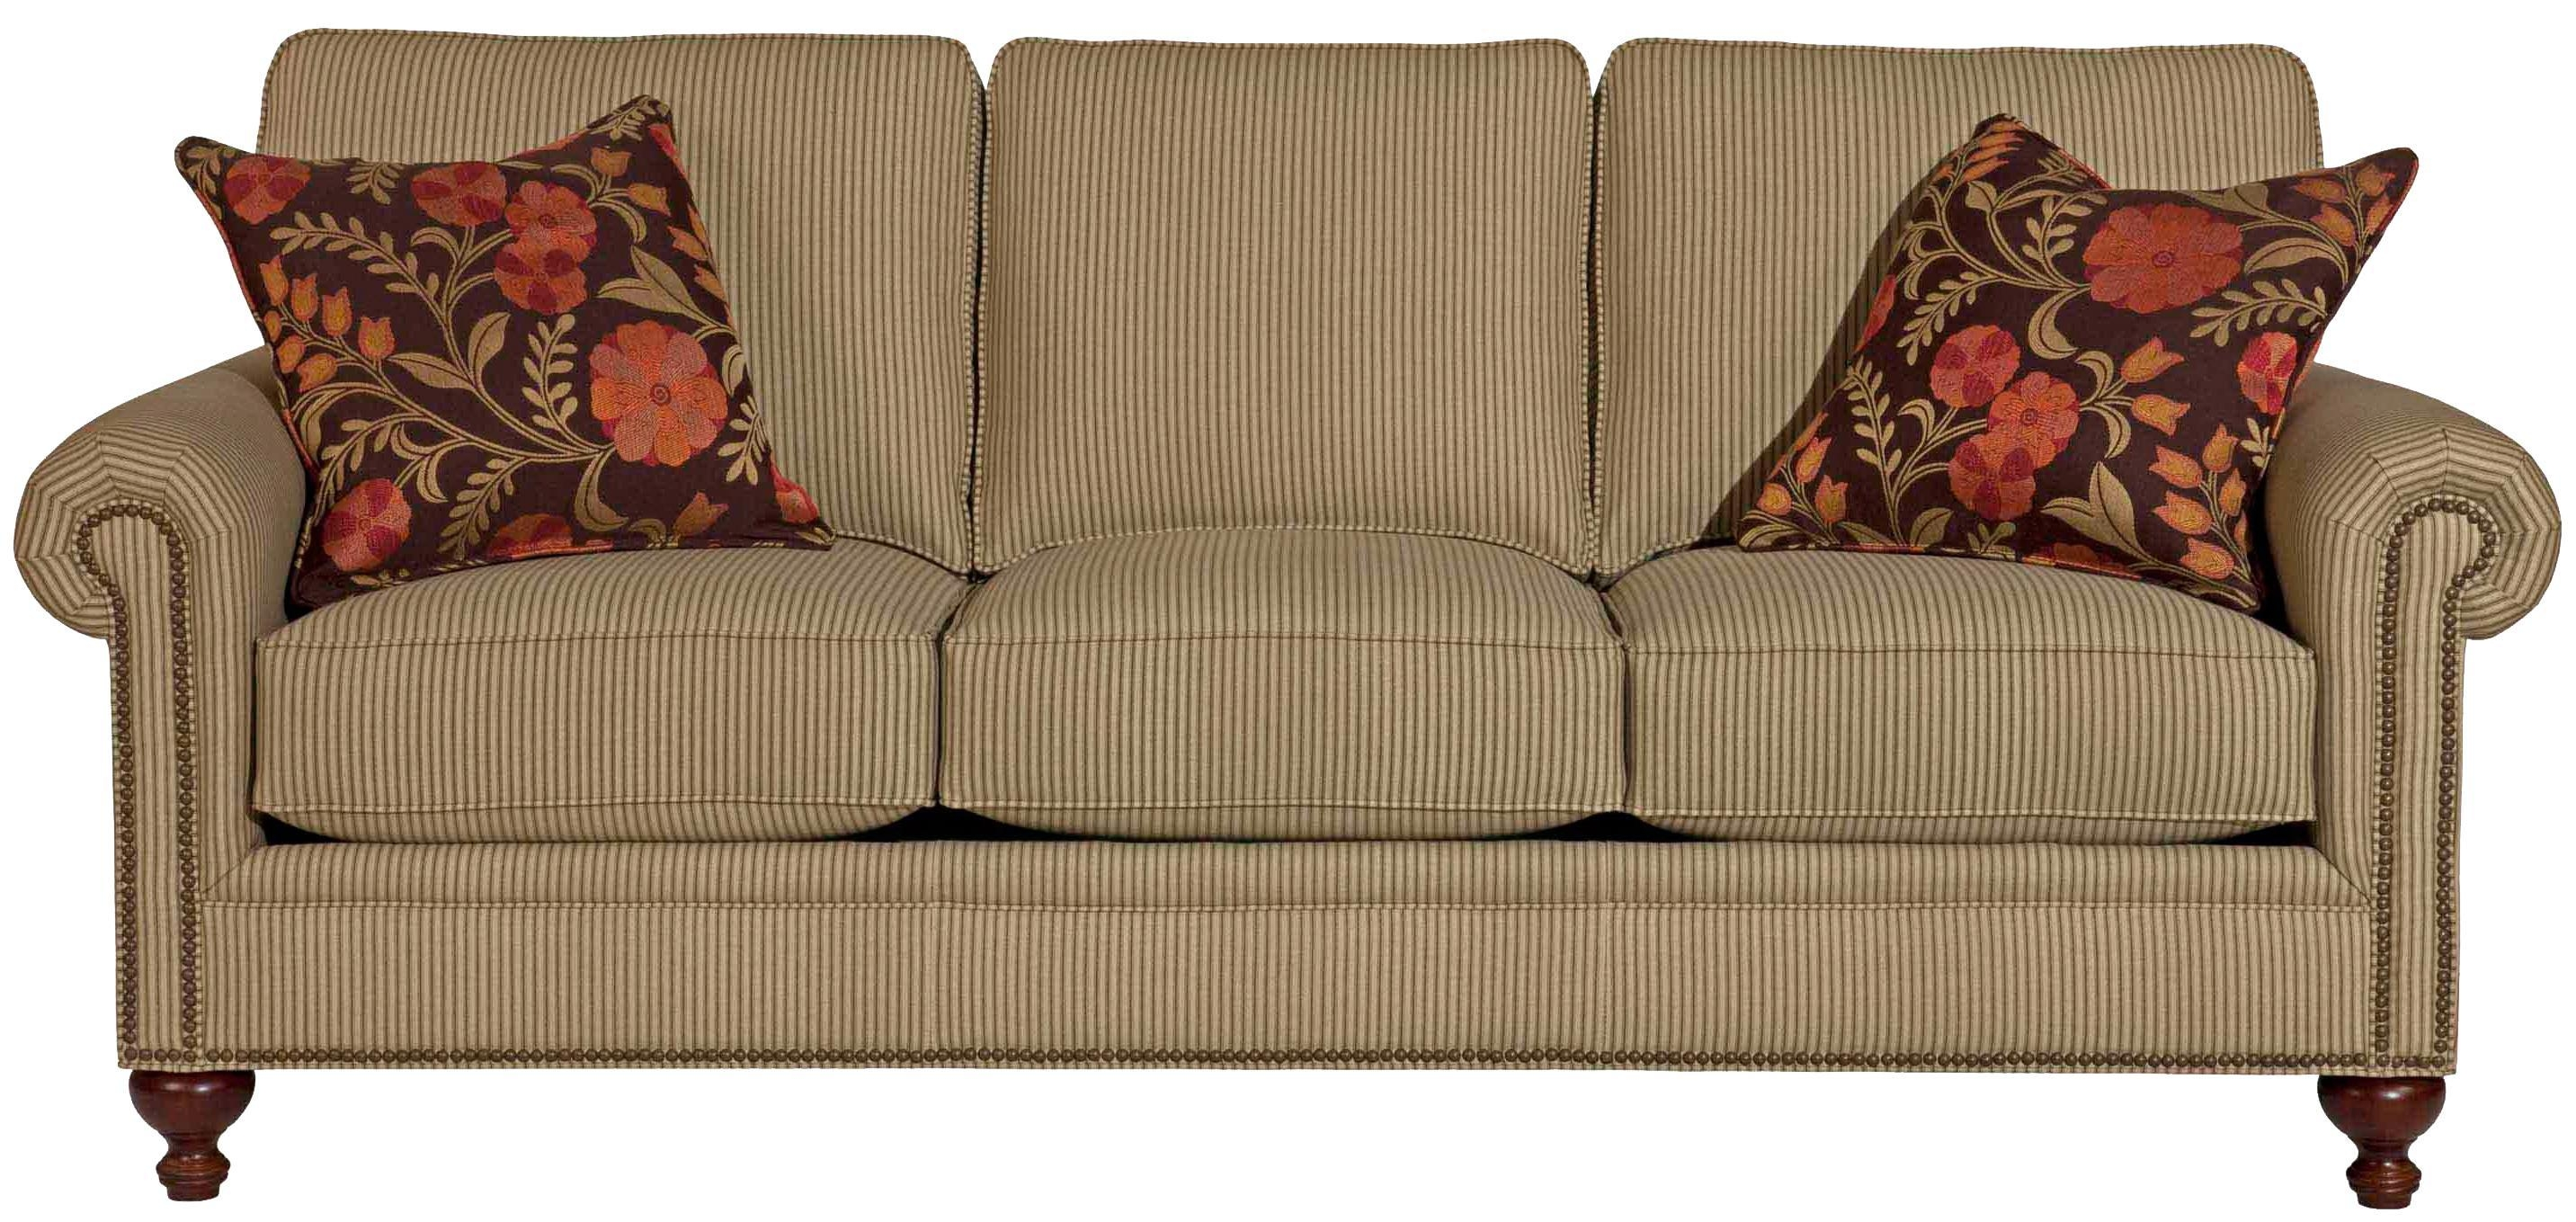 Furniture: Pick Your Lovely Broyhill Couch Design For Your Living Within Broyhill Sofas (Image 18 of 20)